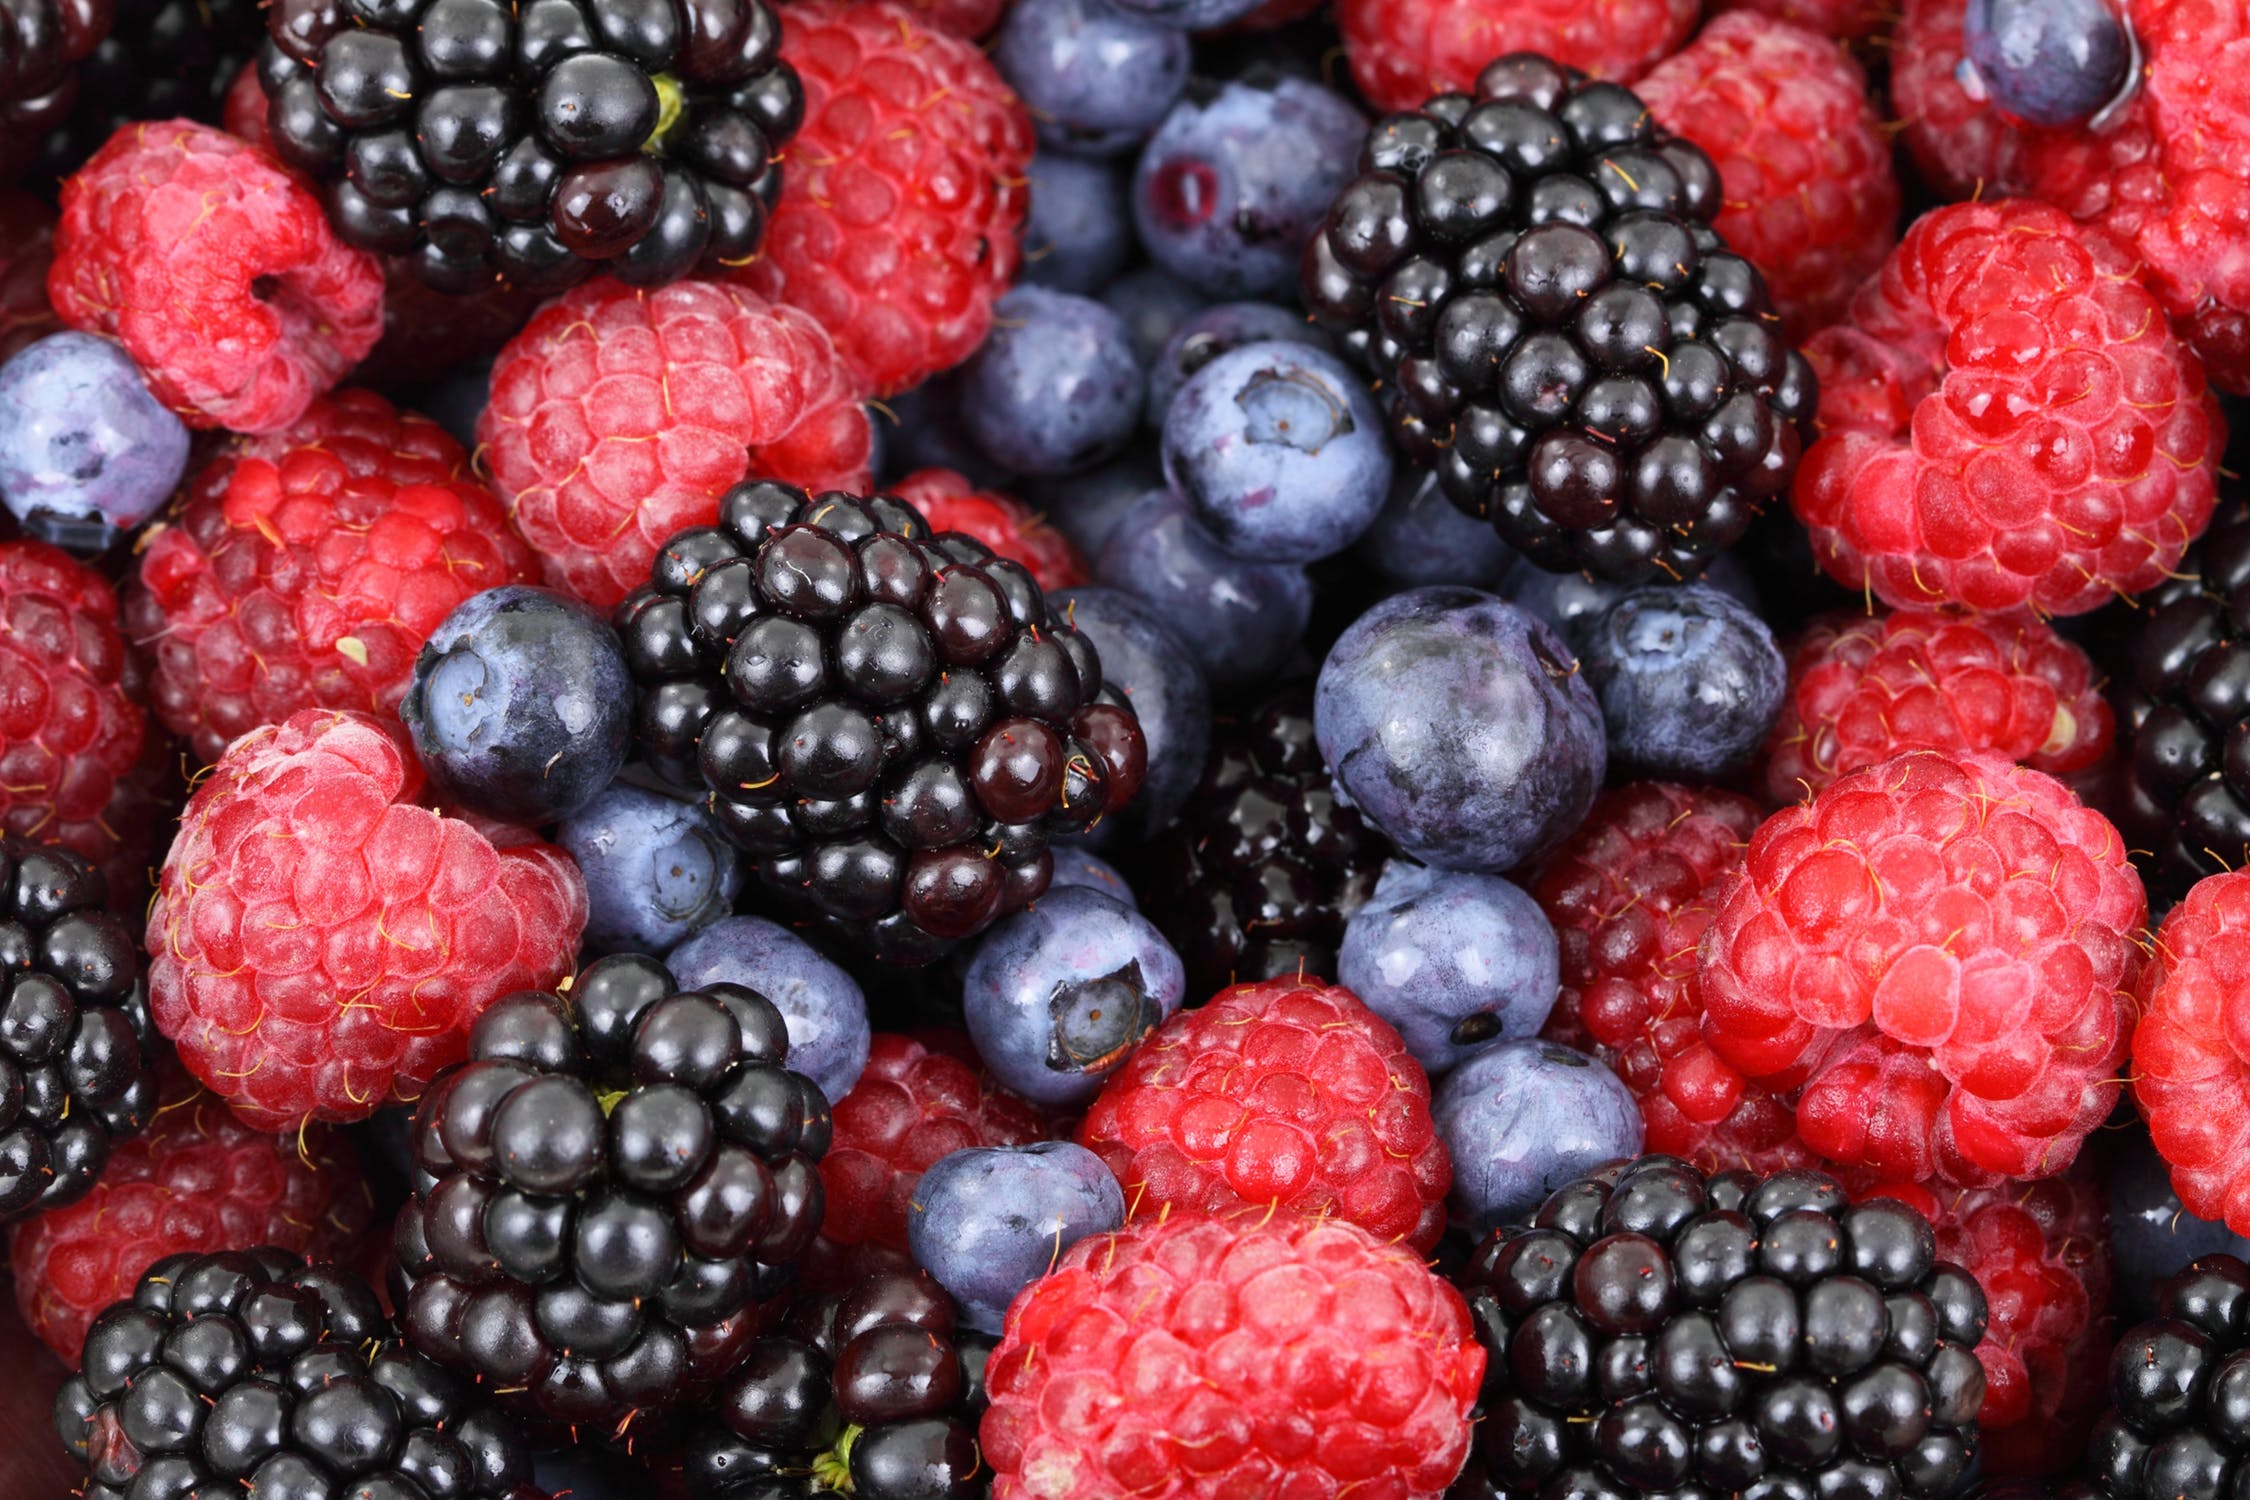 collagen-boosting-foods-you-should-be-eating-for-glowing-skin